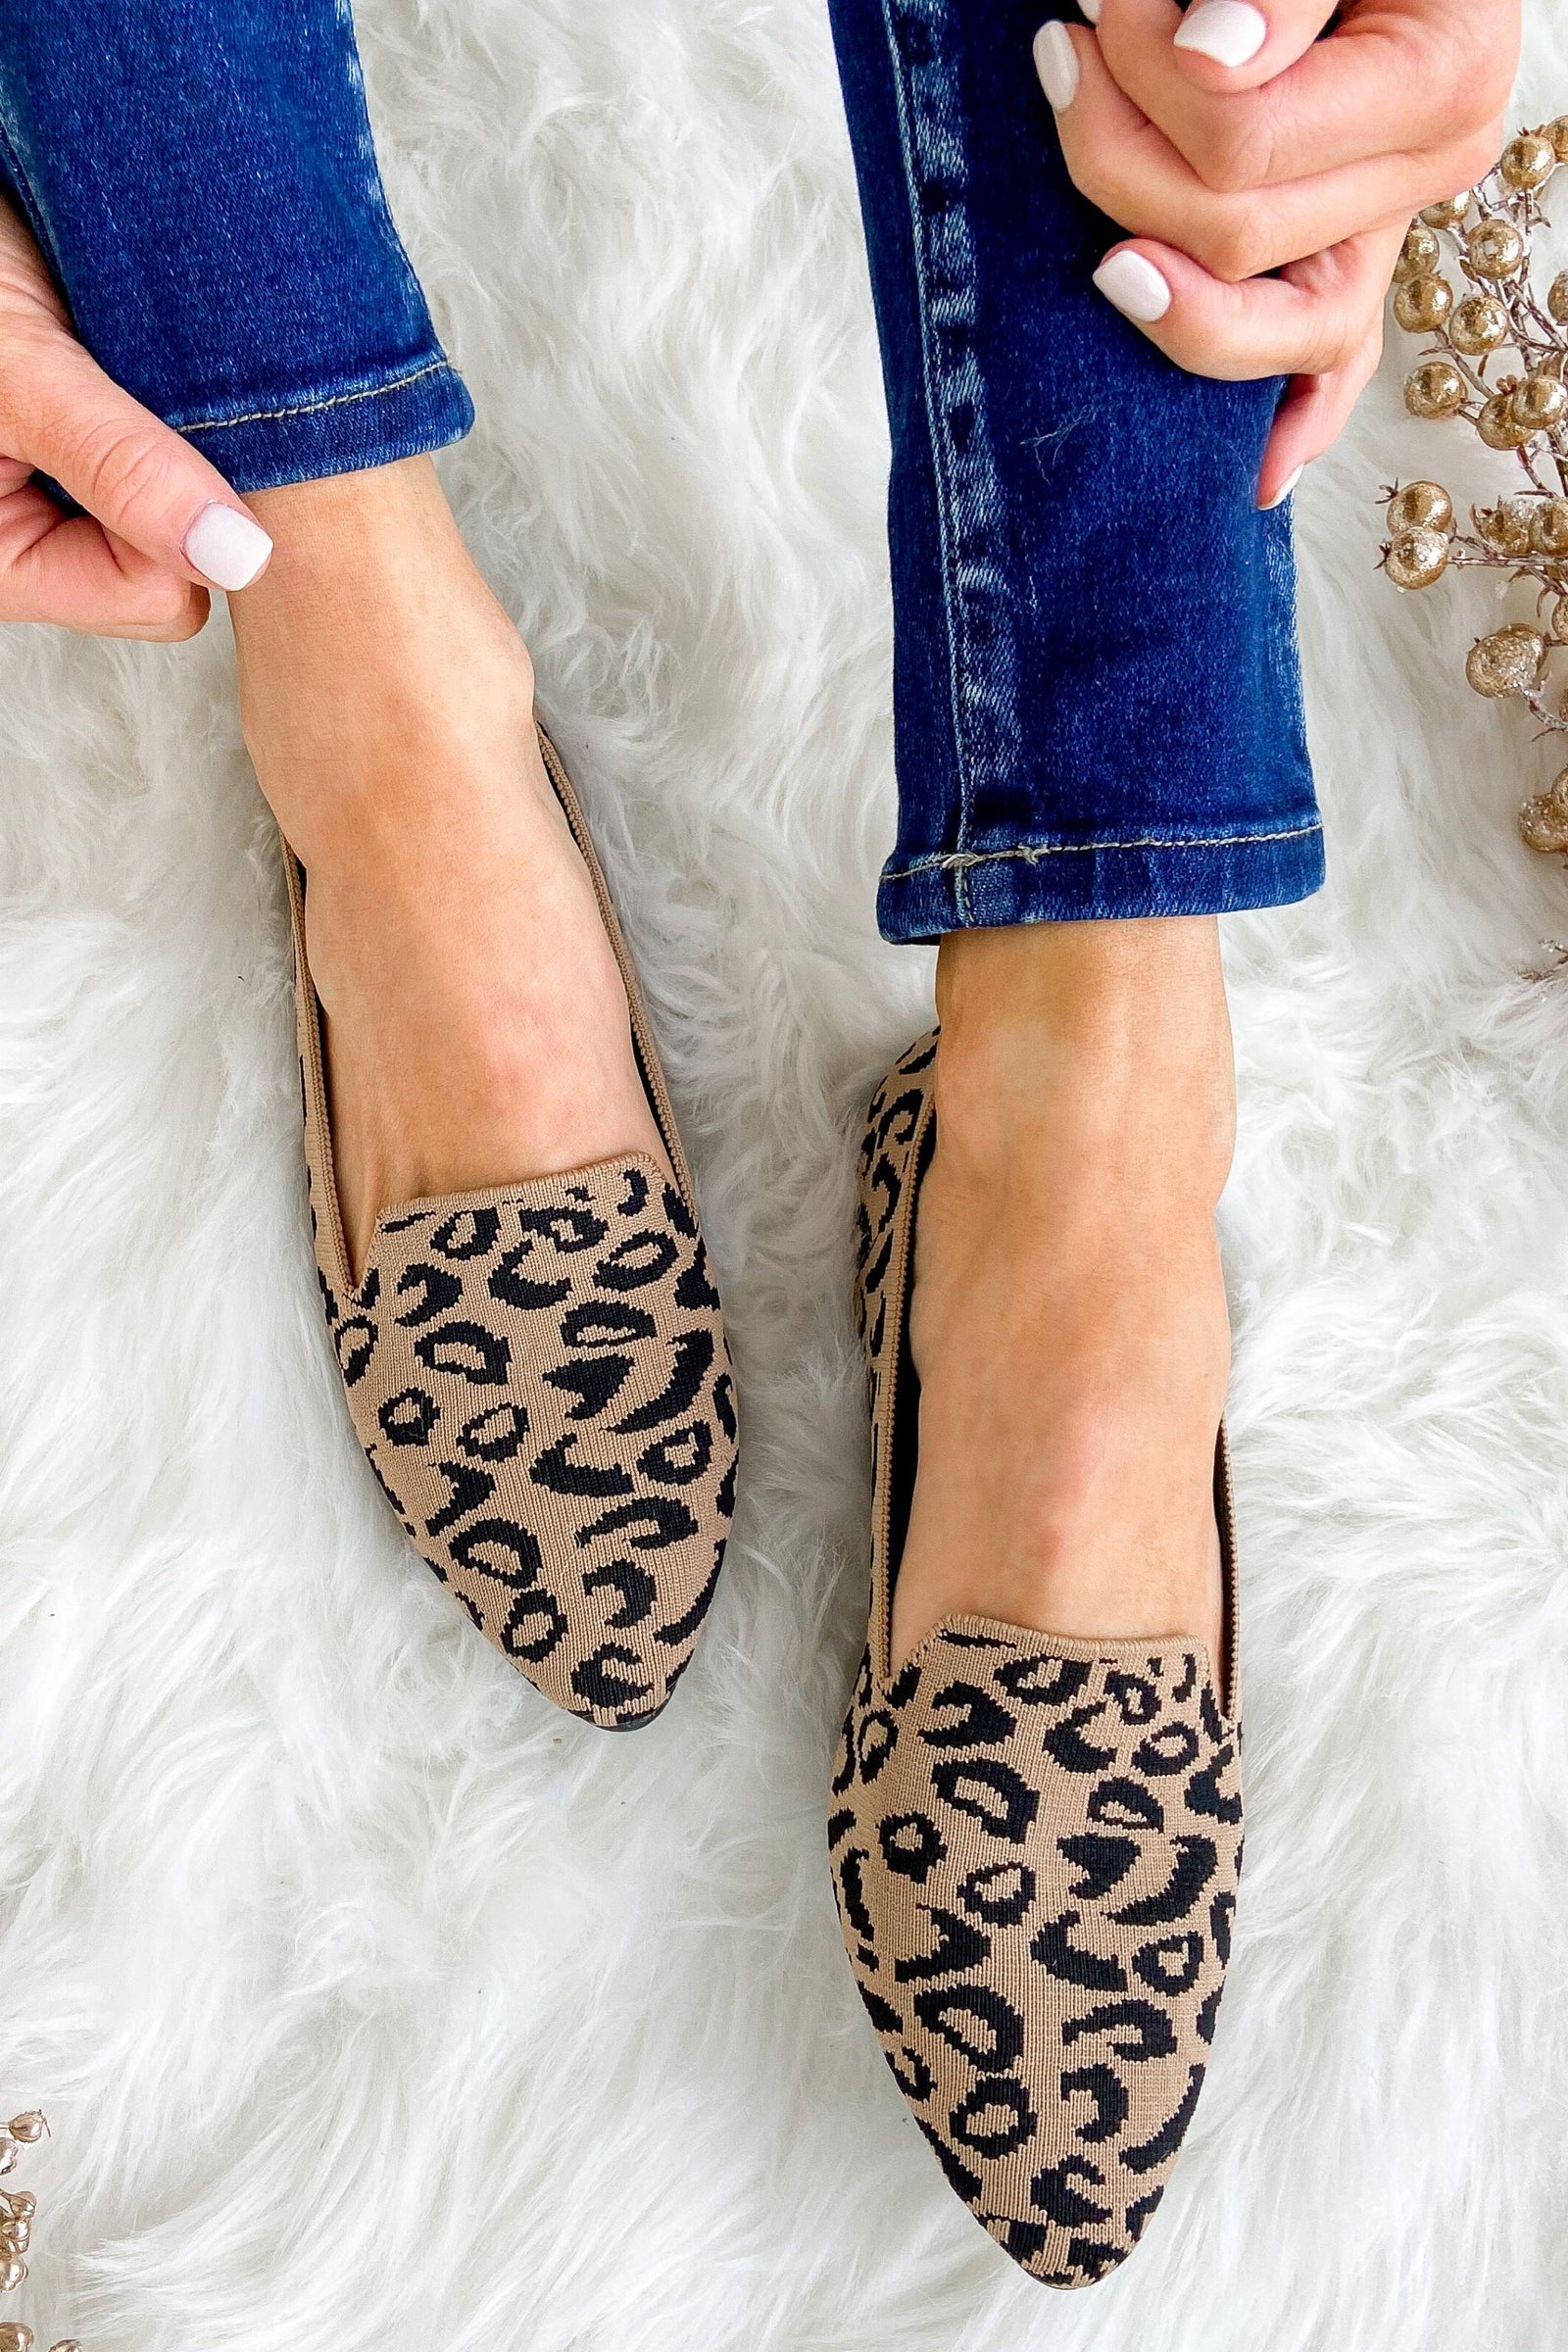 JellyPop Marrianne Flats- Leopard Knitted